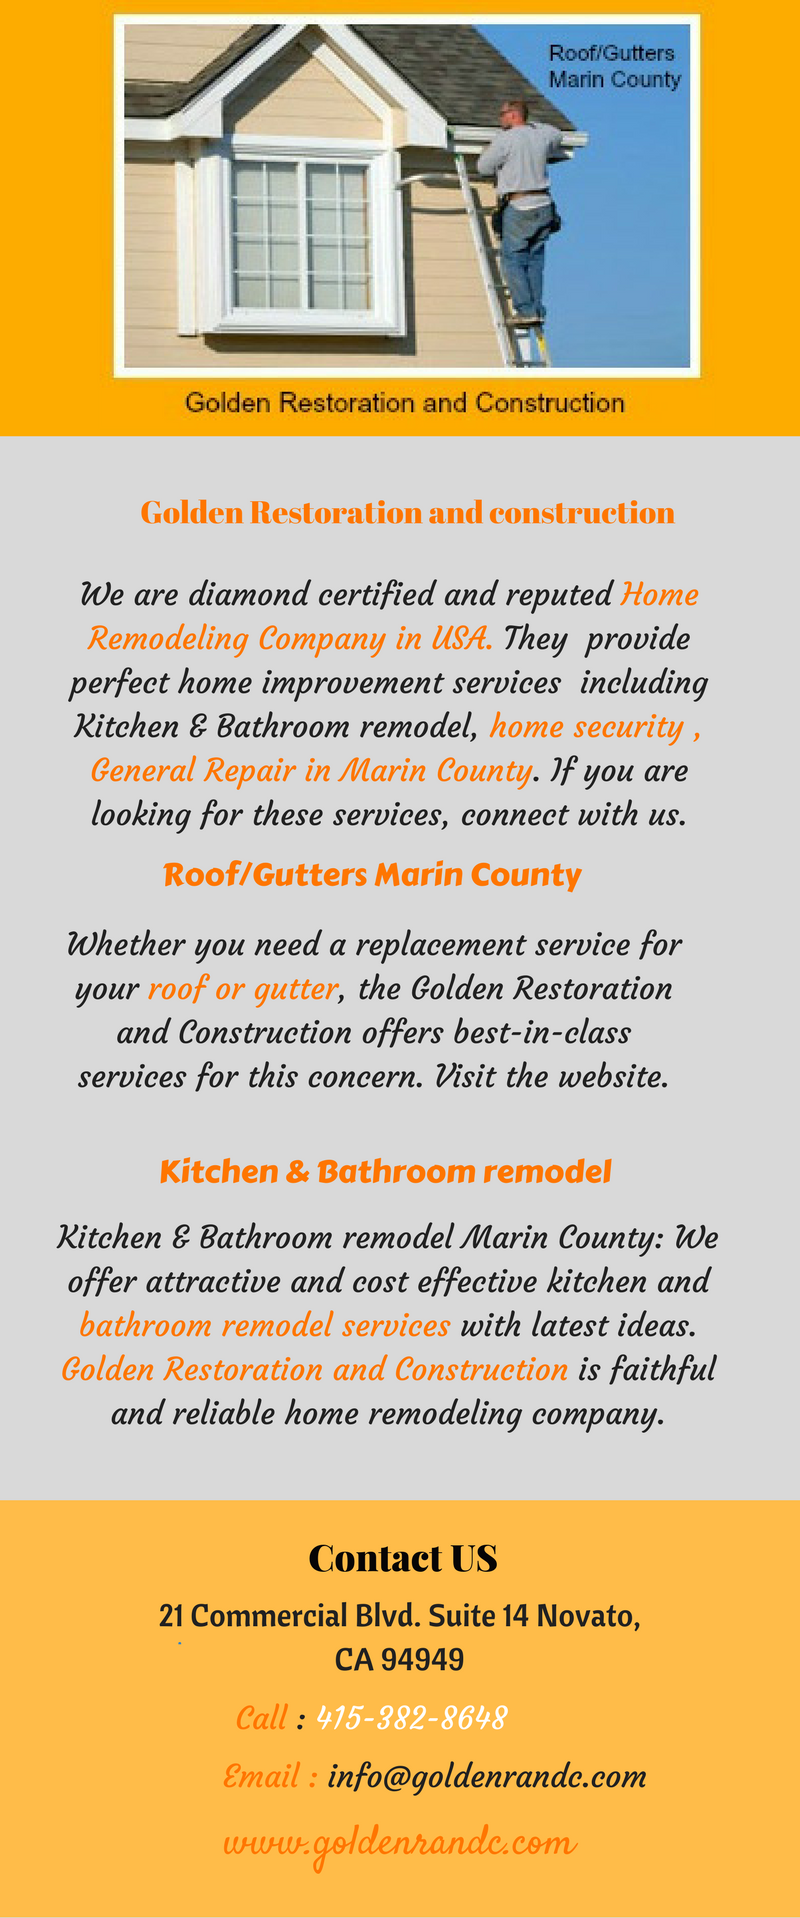 Golden Restoration And Construction Is One Of The Most Popular Home - Home remodeling companies